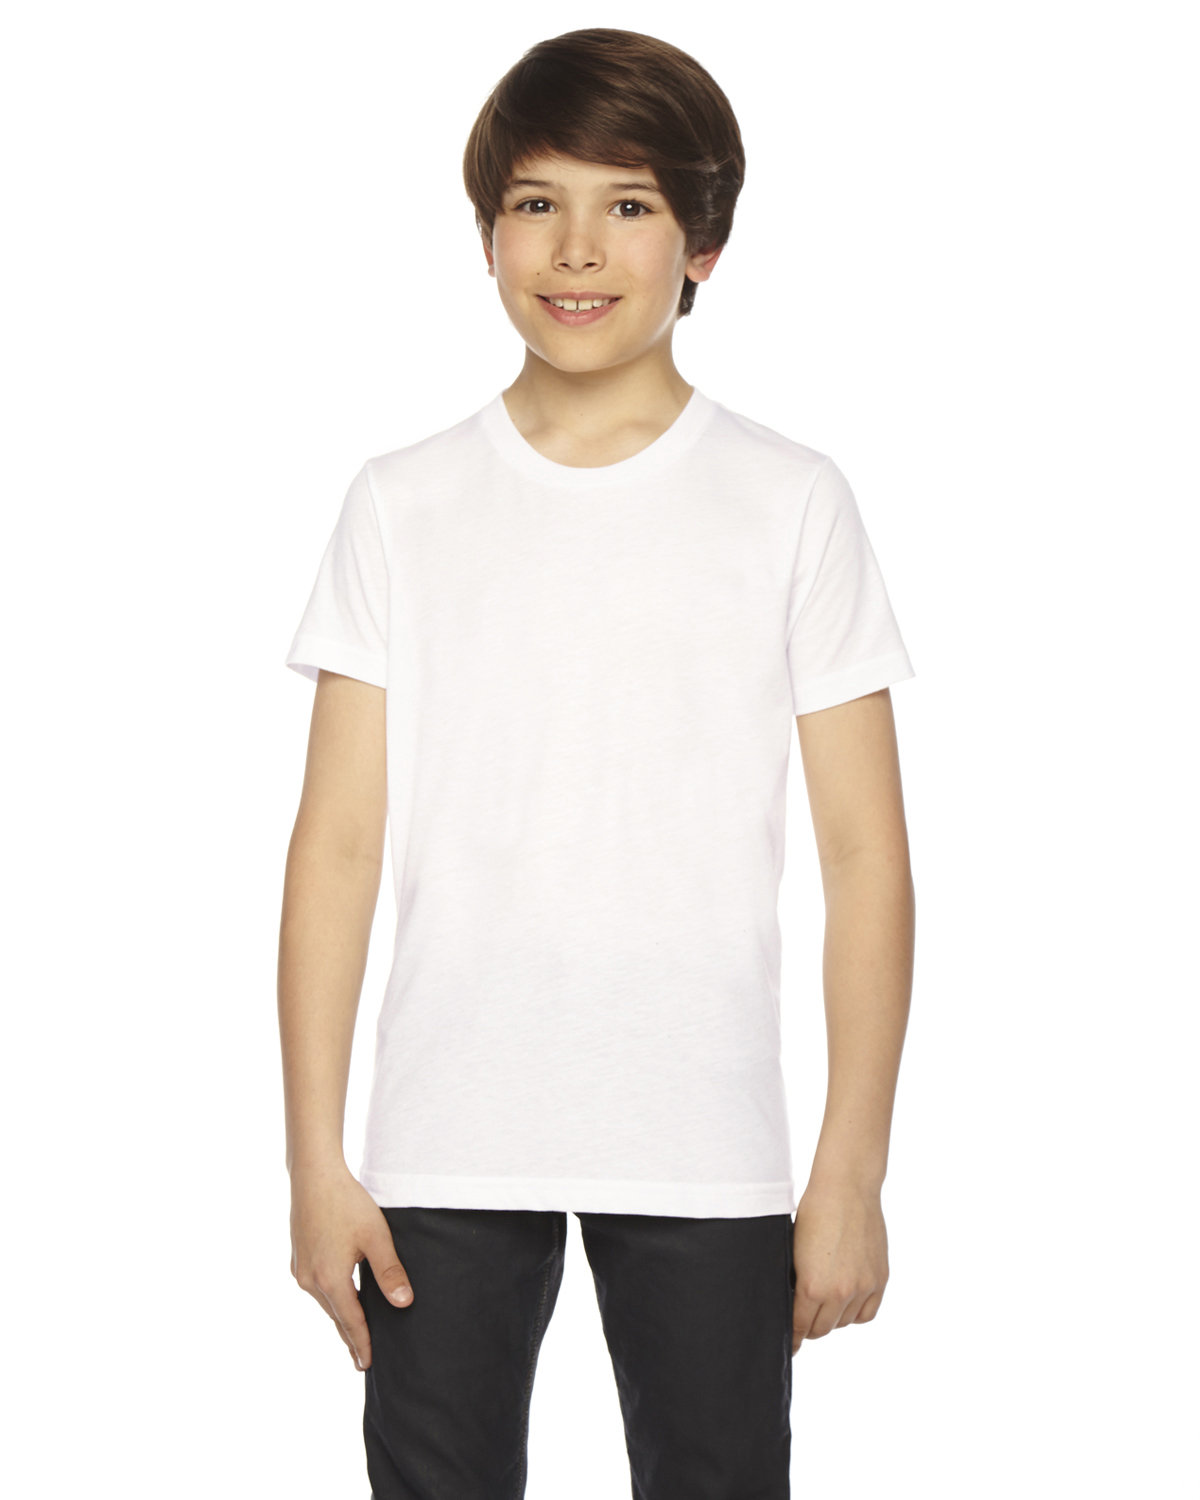 American Apparel Youth Poly-Cotton Short-Sleeve Crewneck WHITE